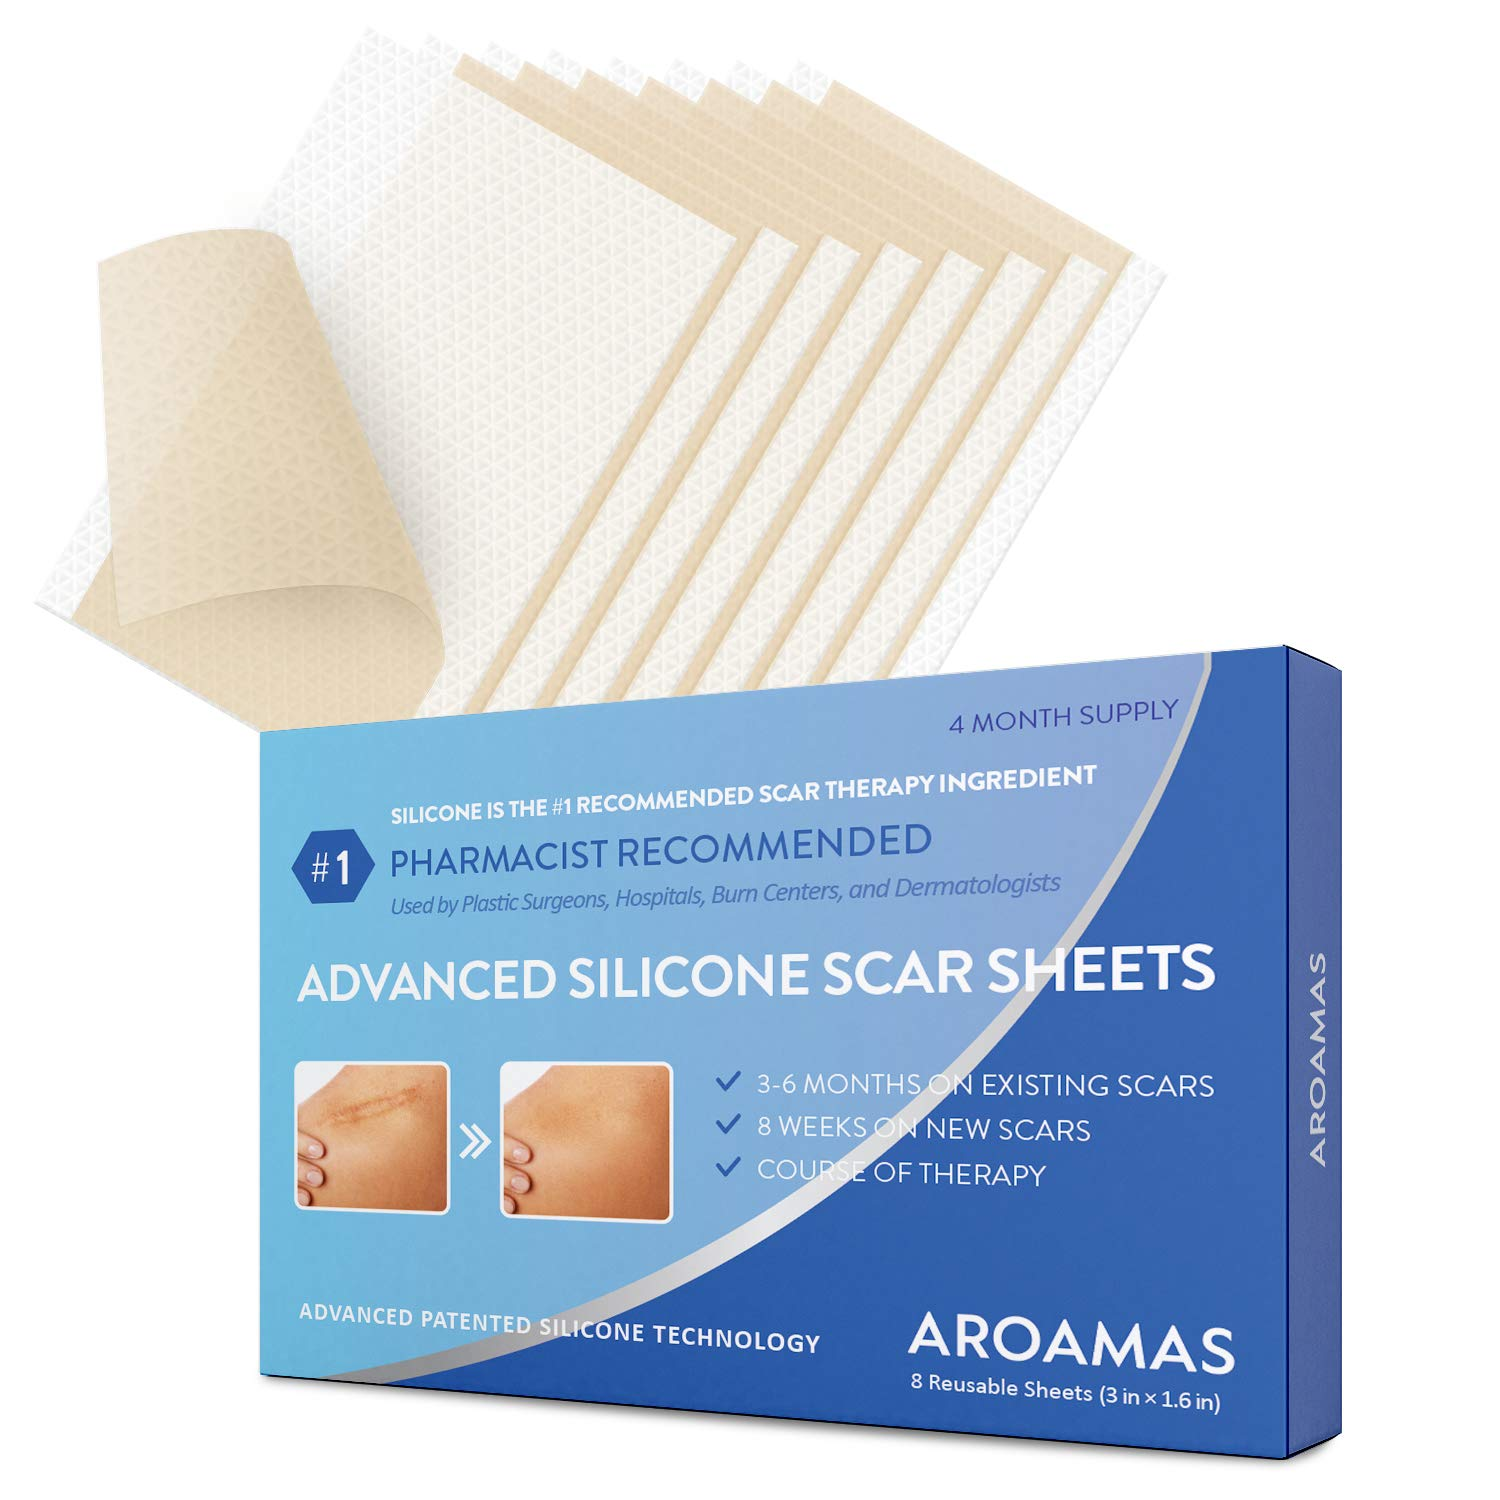 Aroamas Professional Silicone Scar Sheets, Soften and Flattens Scars Resulting from Surgery, Injury, Burns, Acne, C-section and more, Soft Silicone Scar Strips, 3''×1.57'', 8 Sheets (4 Month Supply)